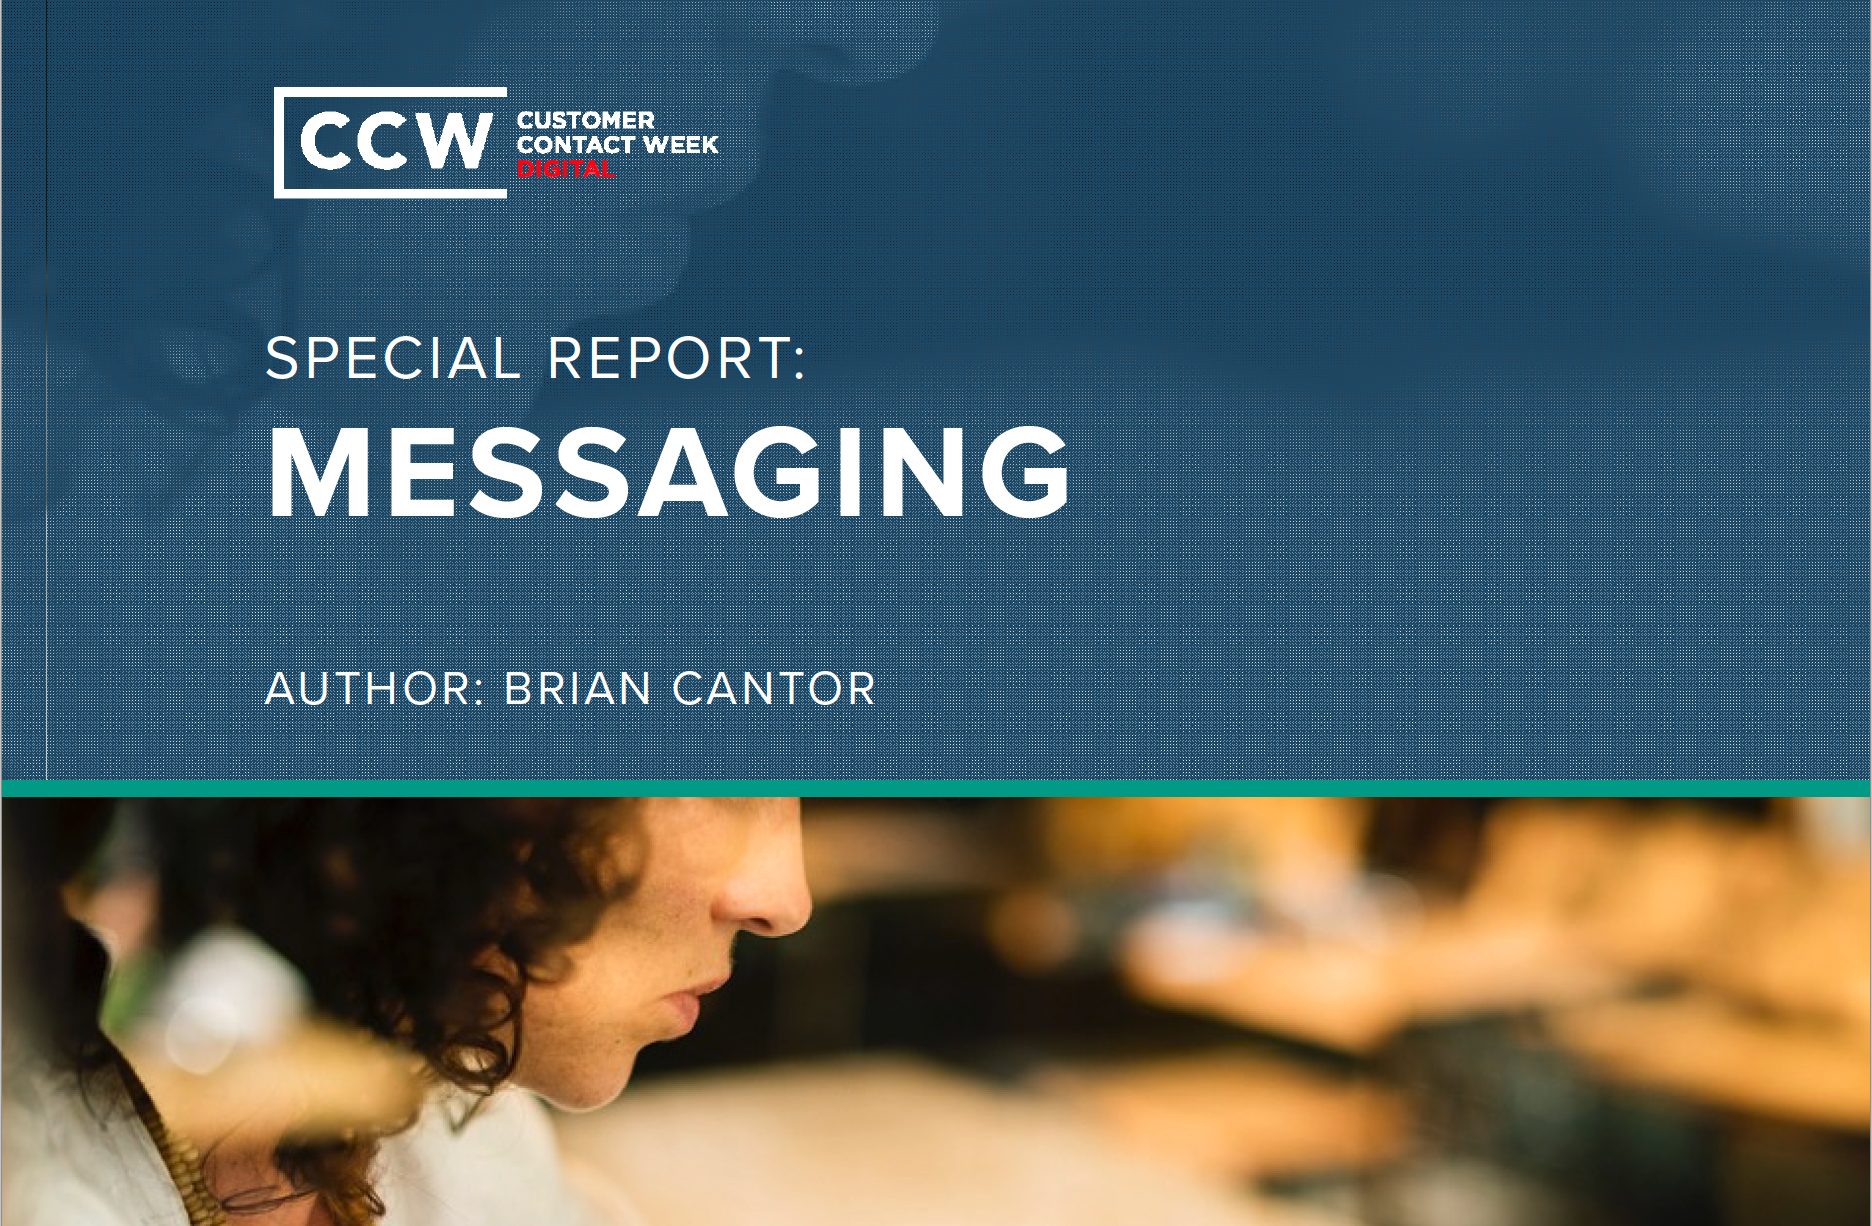 Customer Contact Week Digital Special Report: Messaging by author Brian Cantor